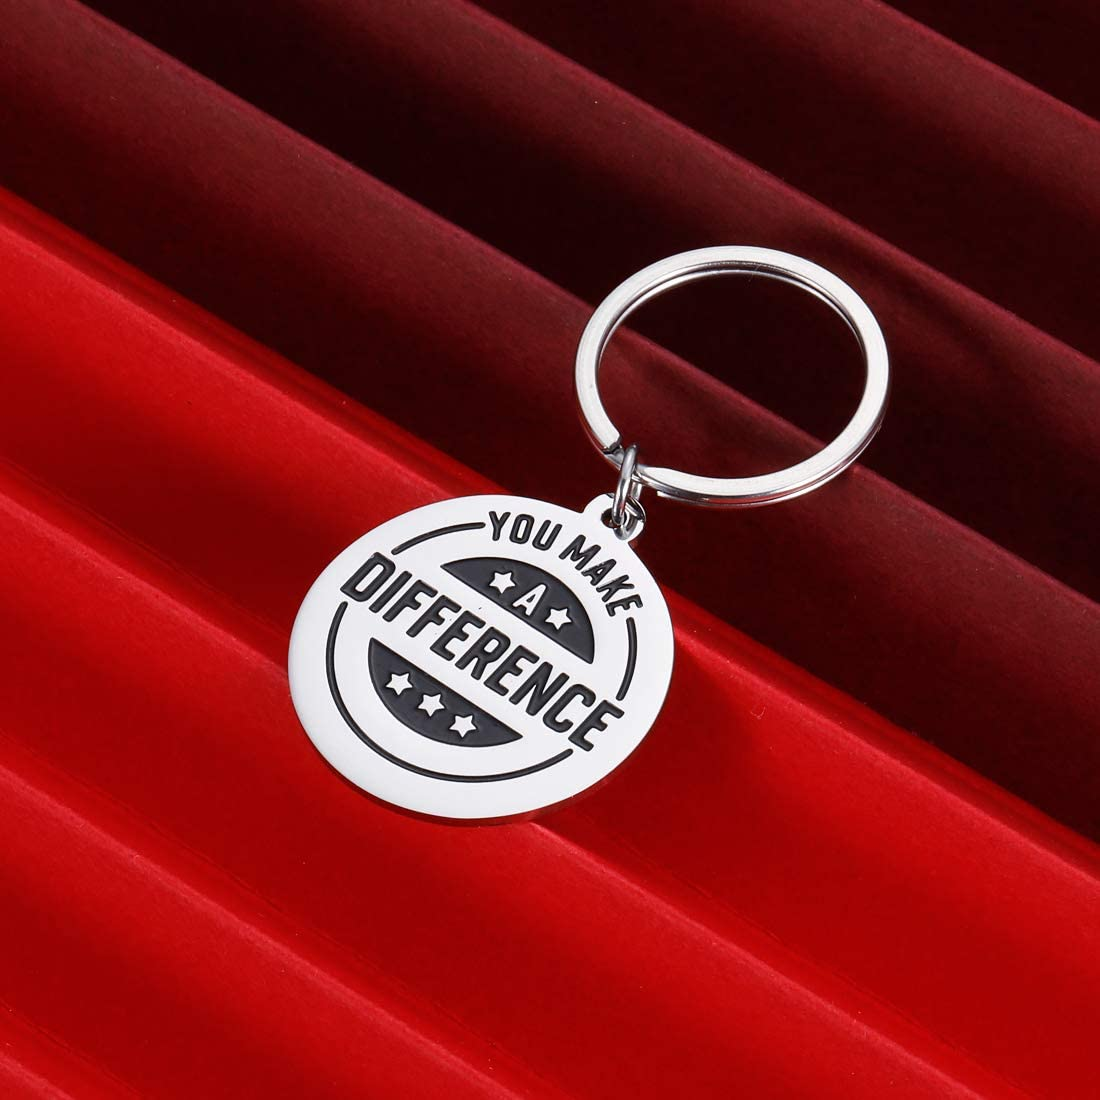 Thank You Gift Keychain for Yourself Coworker Volunteer Appreciation Gifts for Colleague Coach Mentor Employee Staff Gift You Make a Difference Christmas Inspirational Keyring Stocking Stuffer